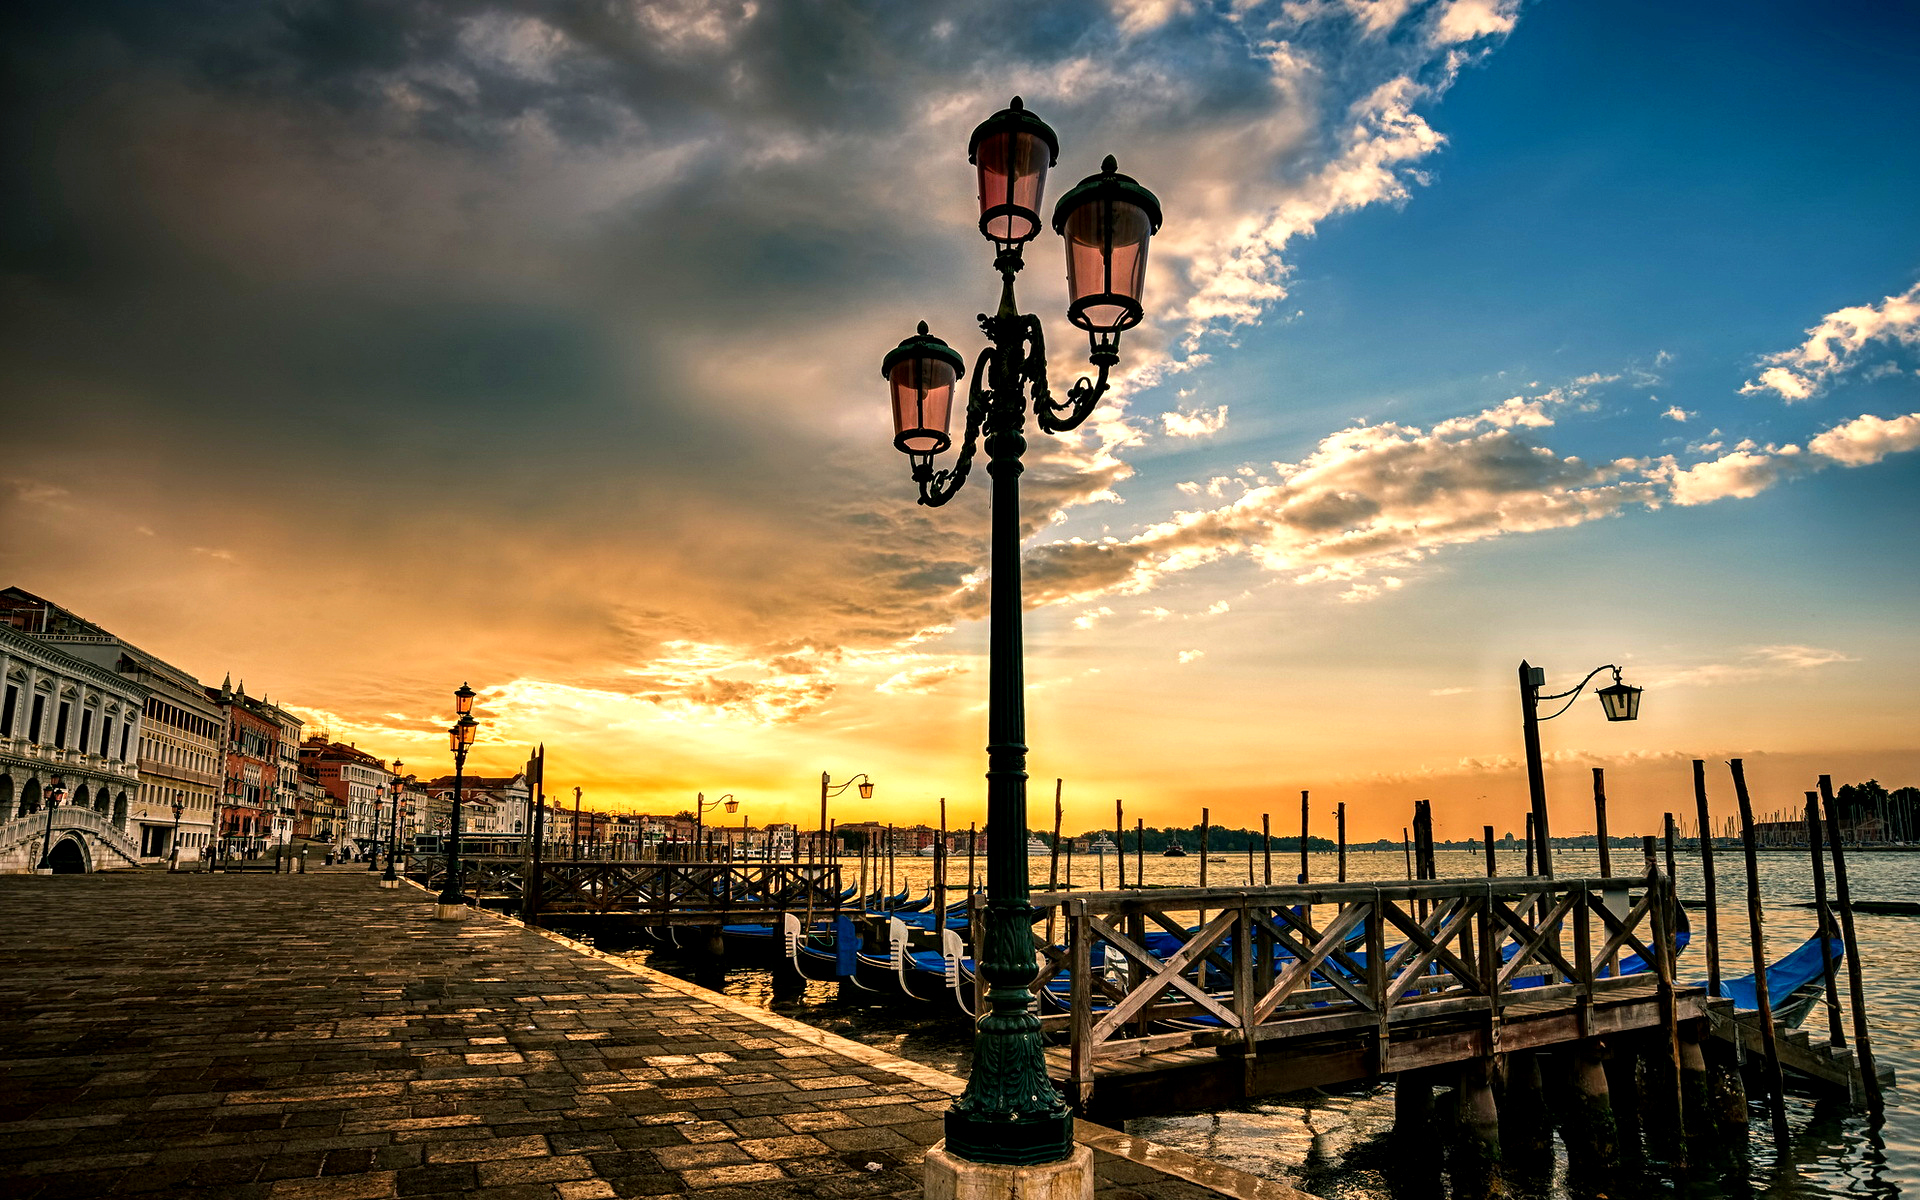 sunset-in-venice-256094